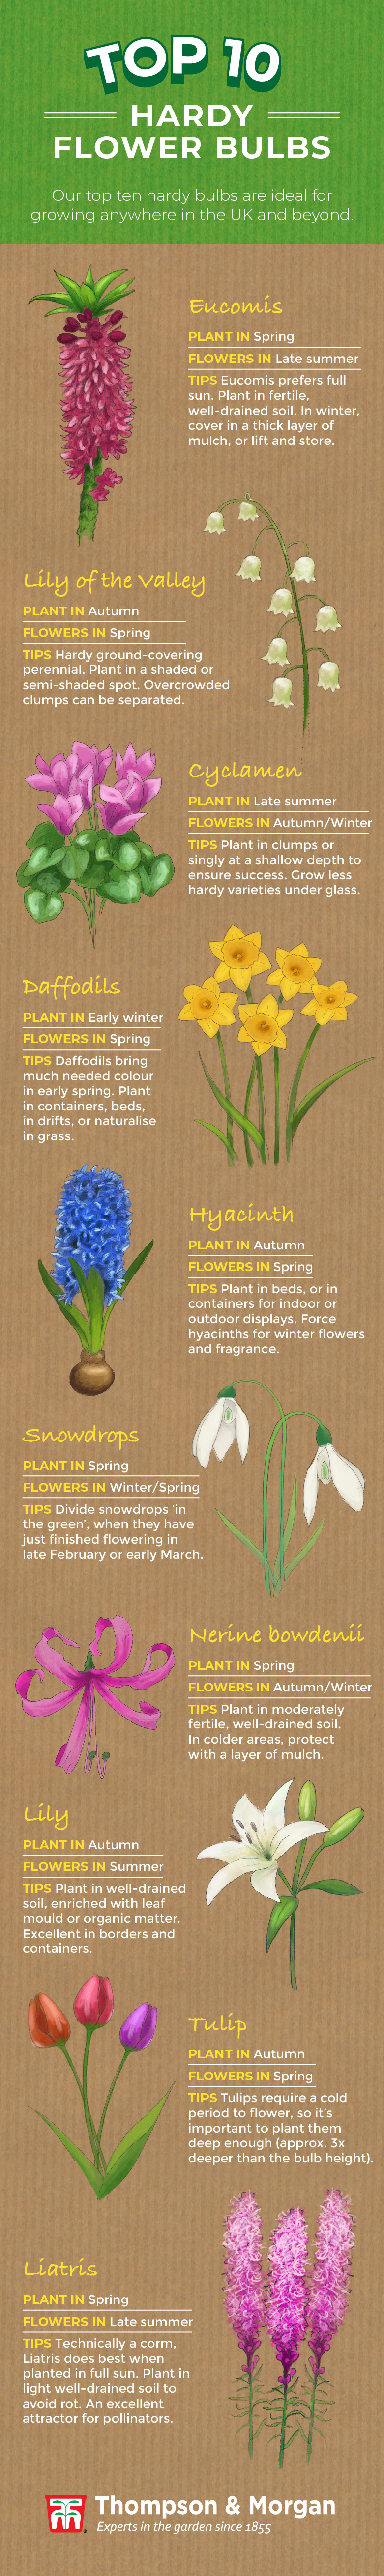 top ten hardy flower bulbs infographic from thompson & morgan